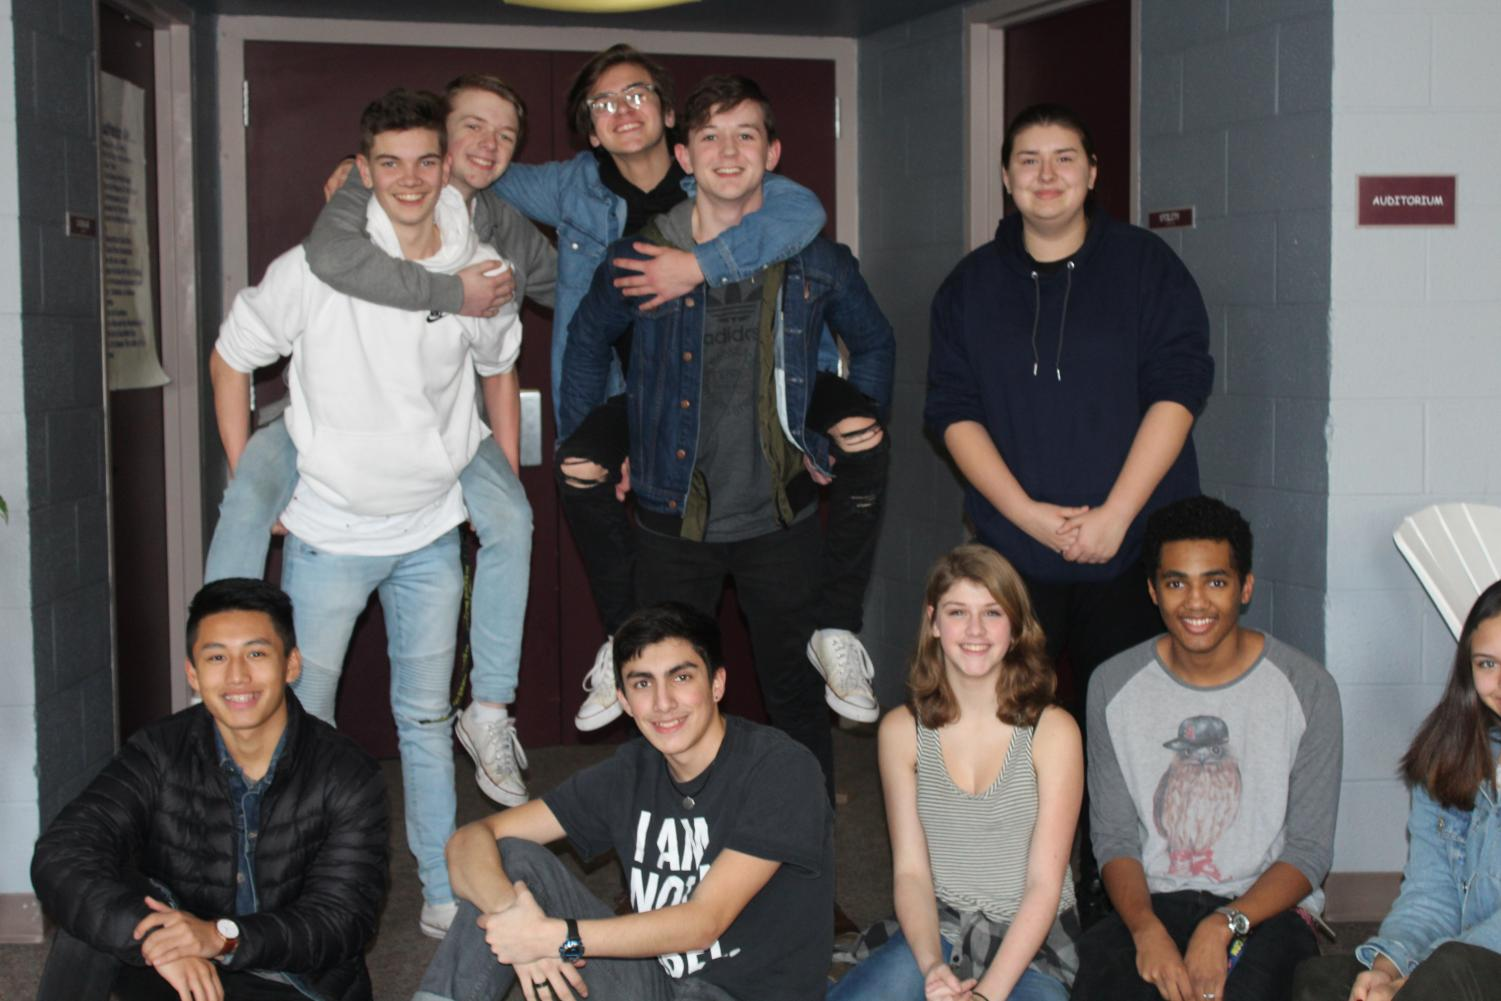 CHS Drama Students. From Top Left to Right:  Joseph Kaylor, Kaden Moss, Phillip Kushuba, Lukas Hurley, August Villalobos. Bottom Left to Right:  Alex Vue, Christopher Mendez, Melody Howard, Trenton Ruffin, and Aliya Falls.